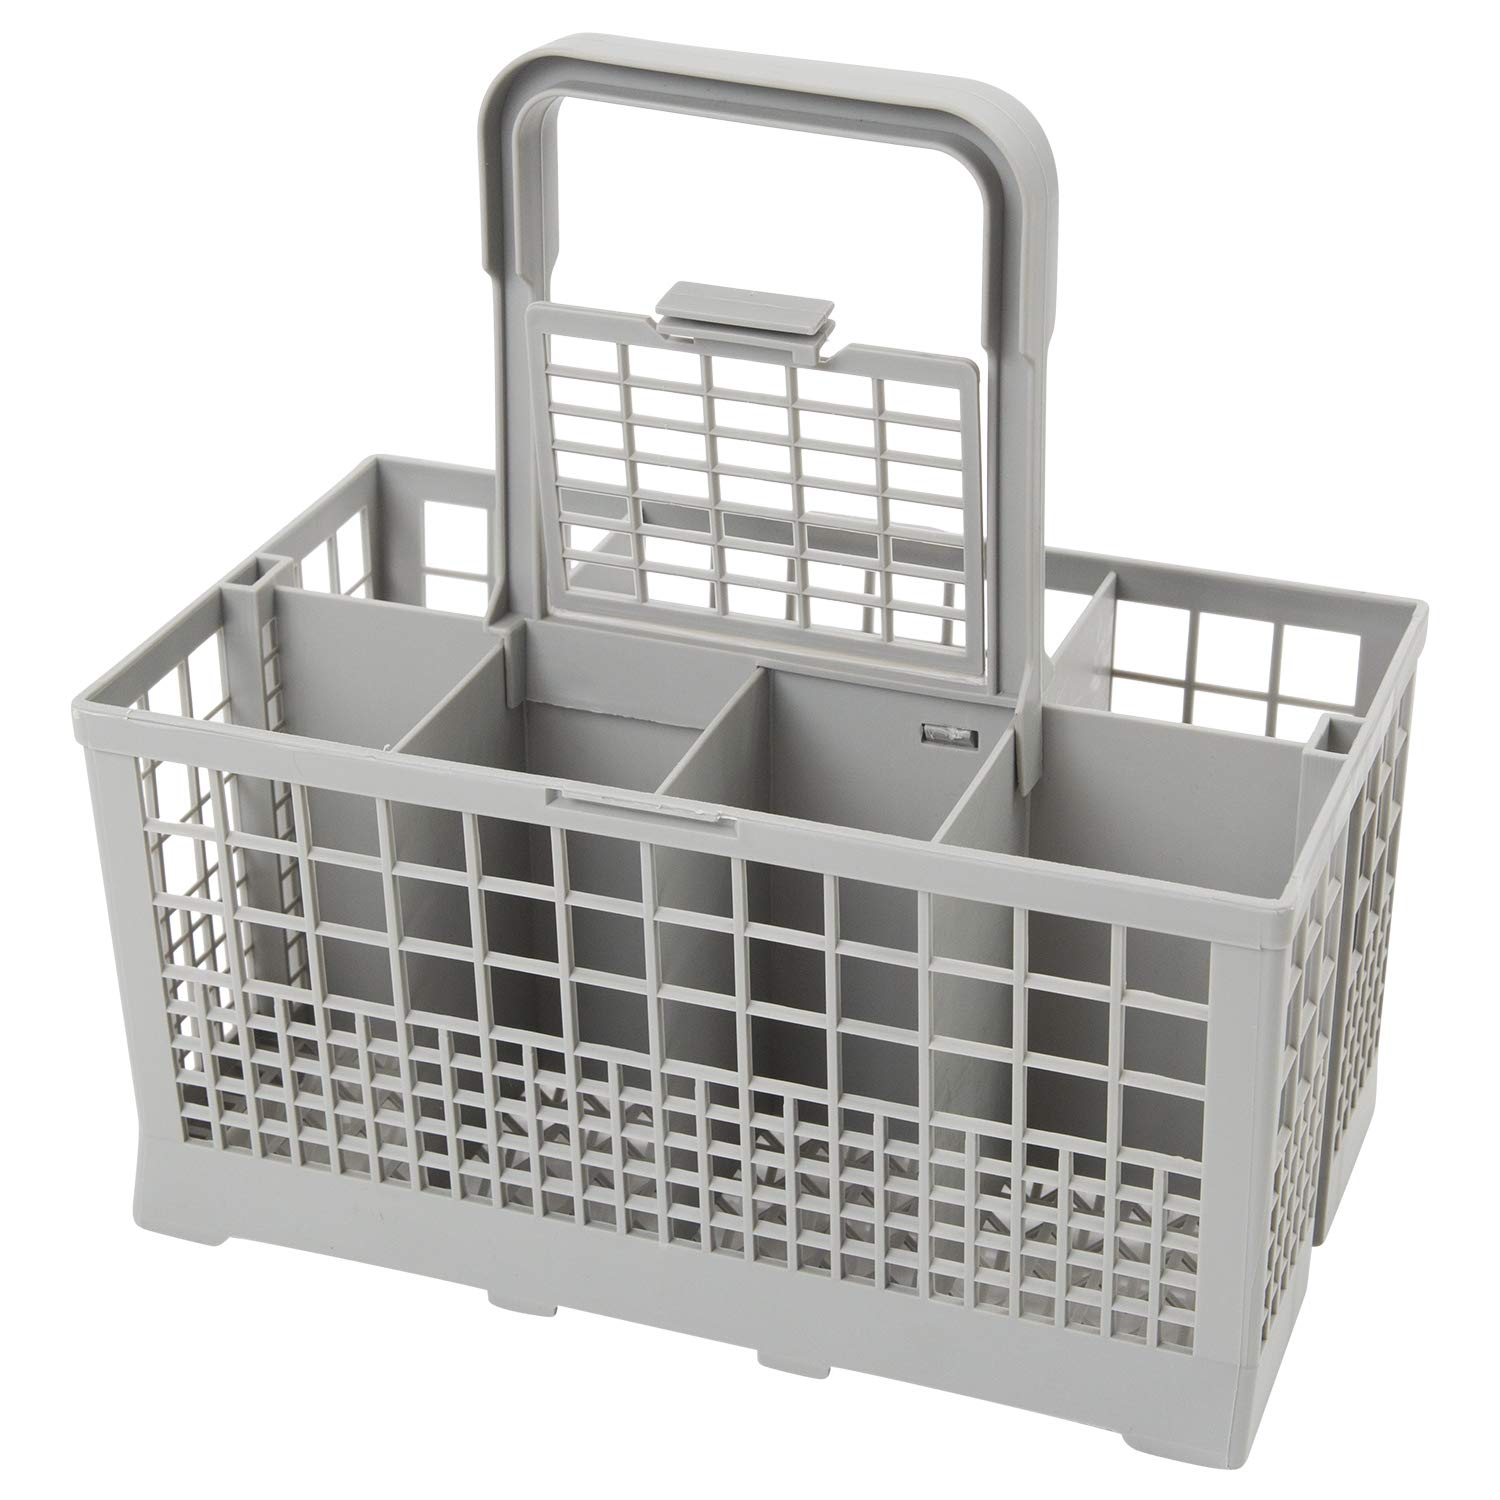 "Houseables Dishwasher Utensil Basket, Cutlery Rack, 9.45"" x 5.5""x 4.7"", Gray, Plastic, Replacement Silverware Caddy, Universal Organizer, Tray with Handle, Container for Small Items, Flatware Holder"